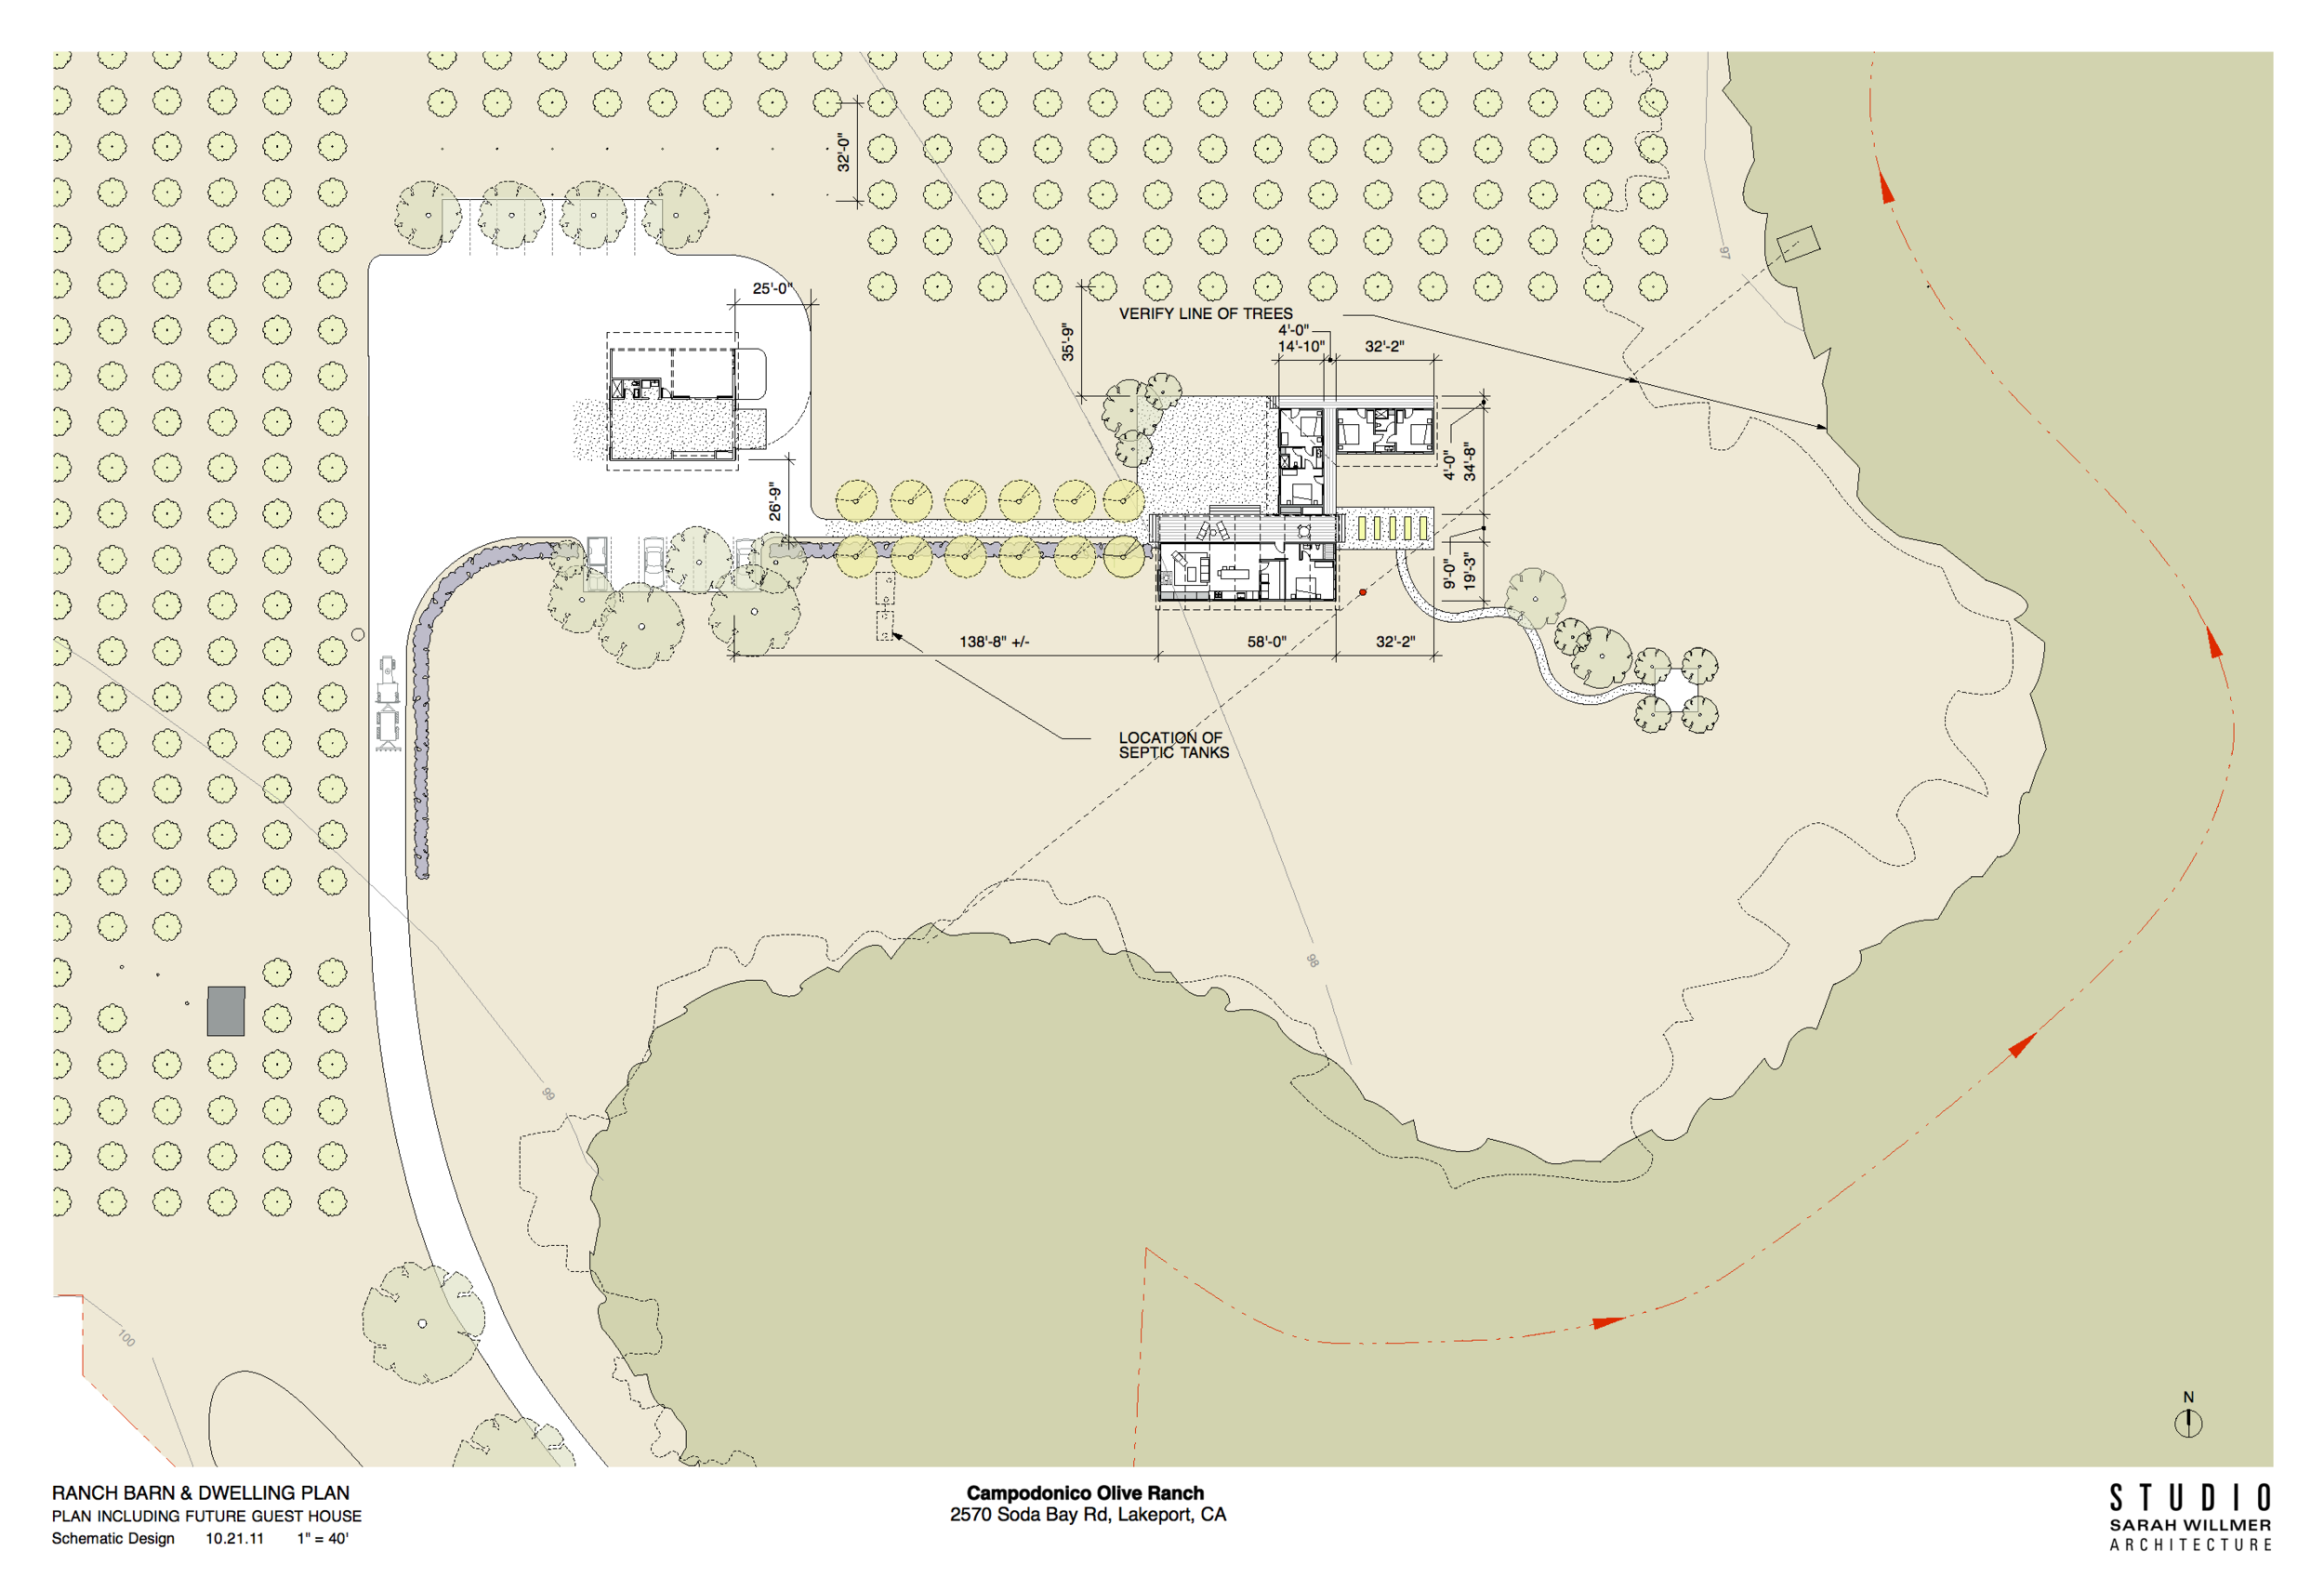 02_Site Plan-10.21.11-Soda Bay Rd-Phase II.png